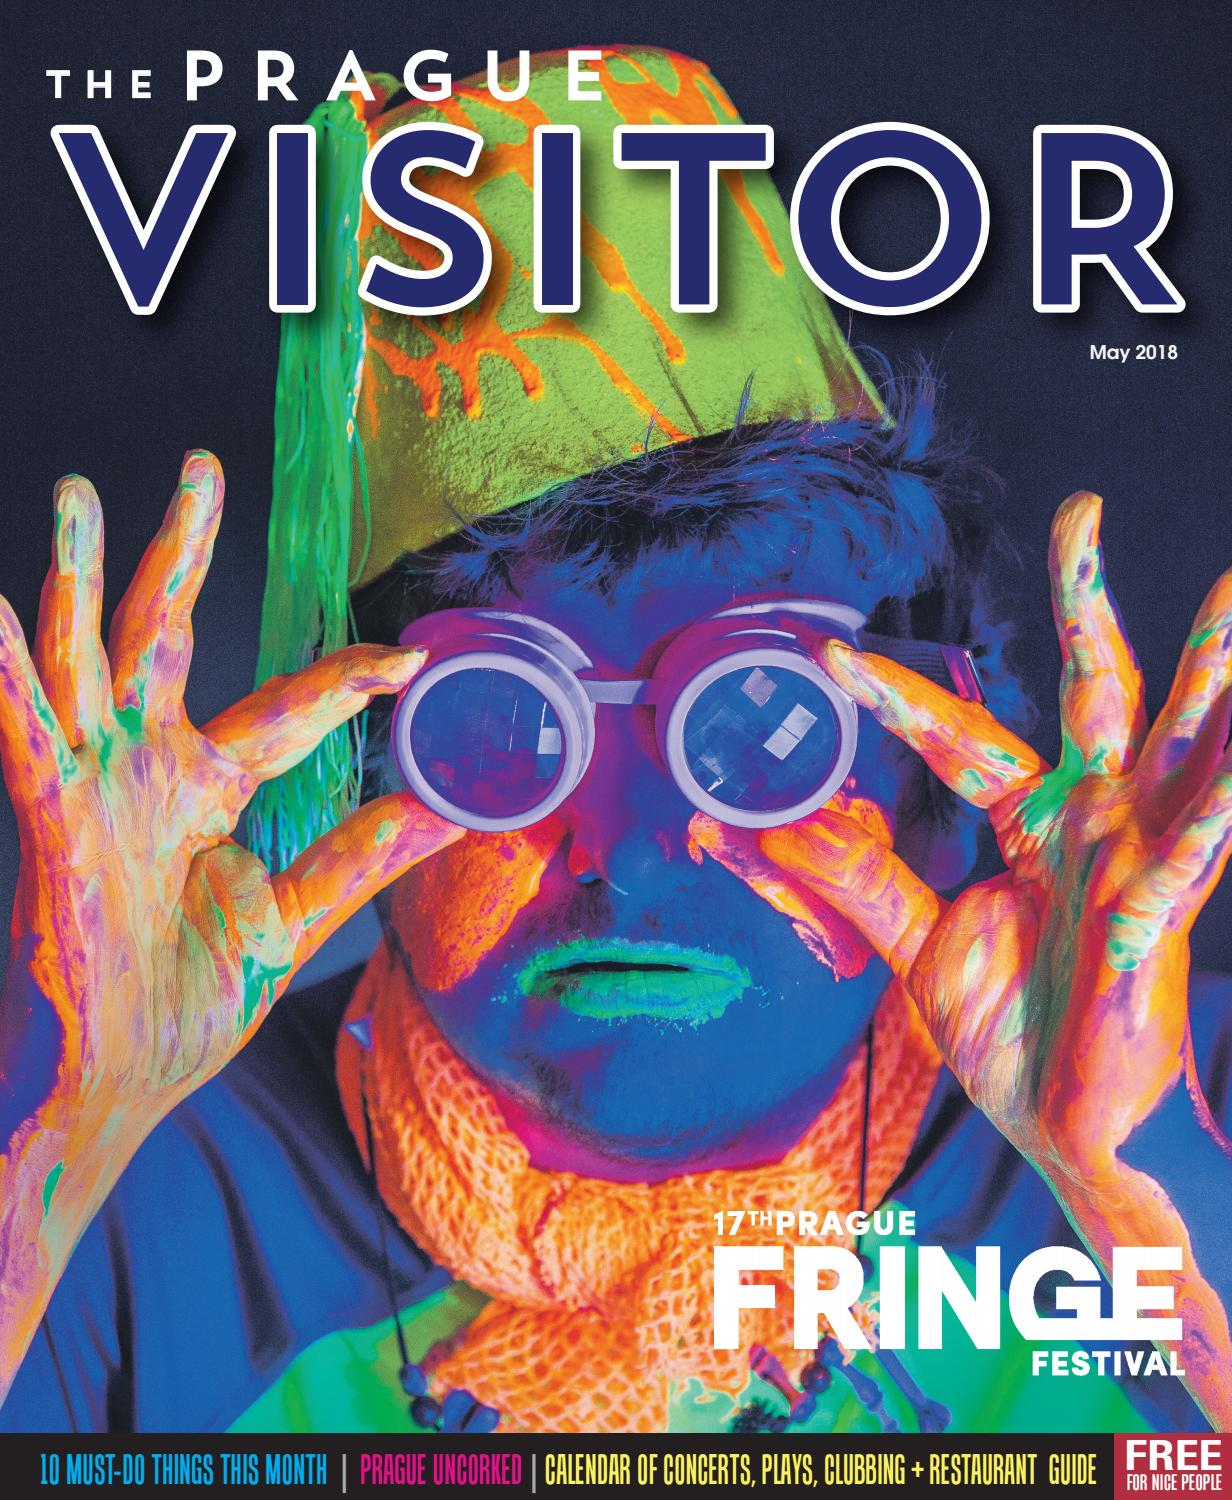 Prague Visitor - May 2018 by The Prague Visitor - issuu